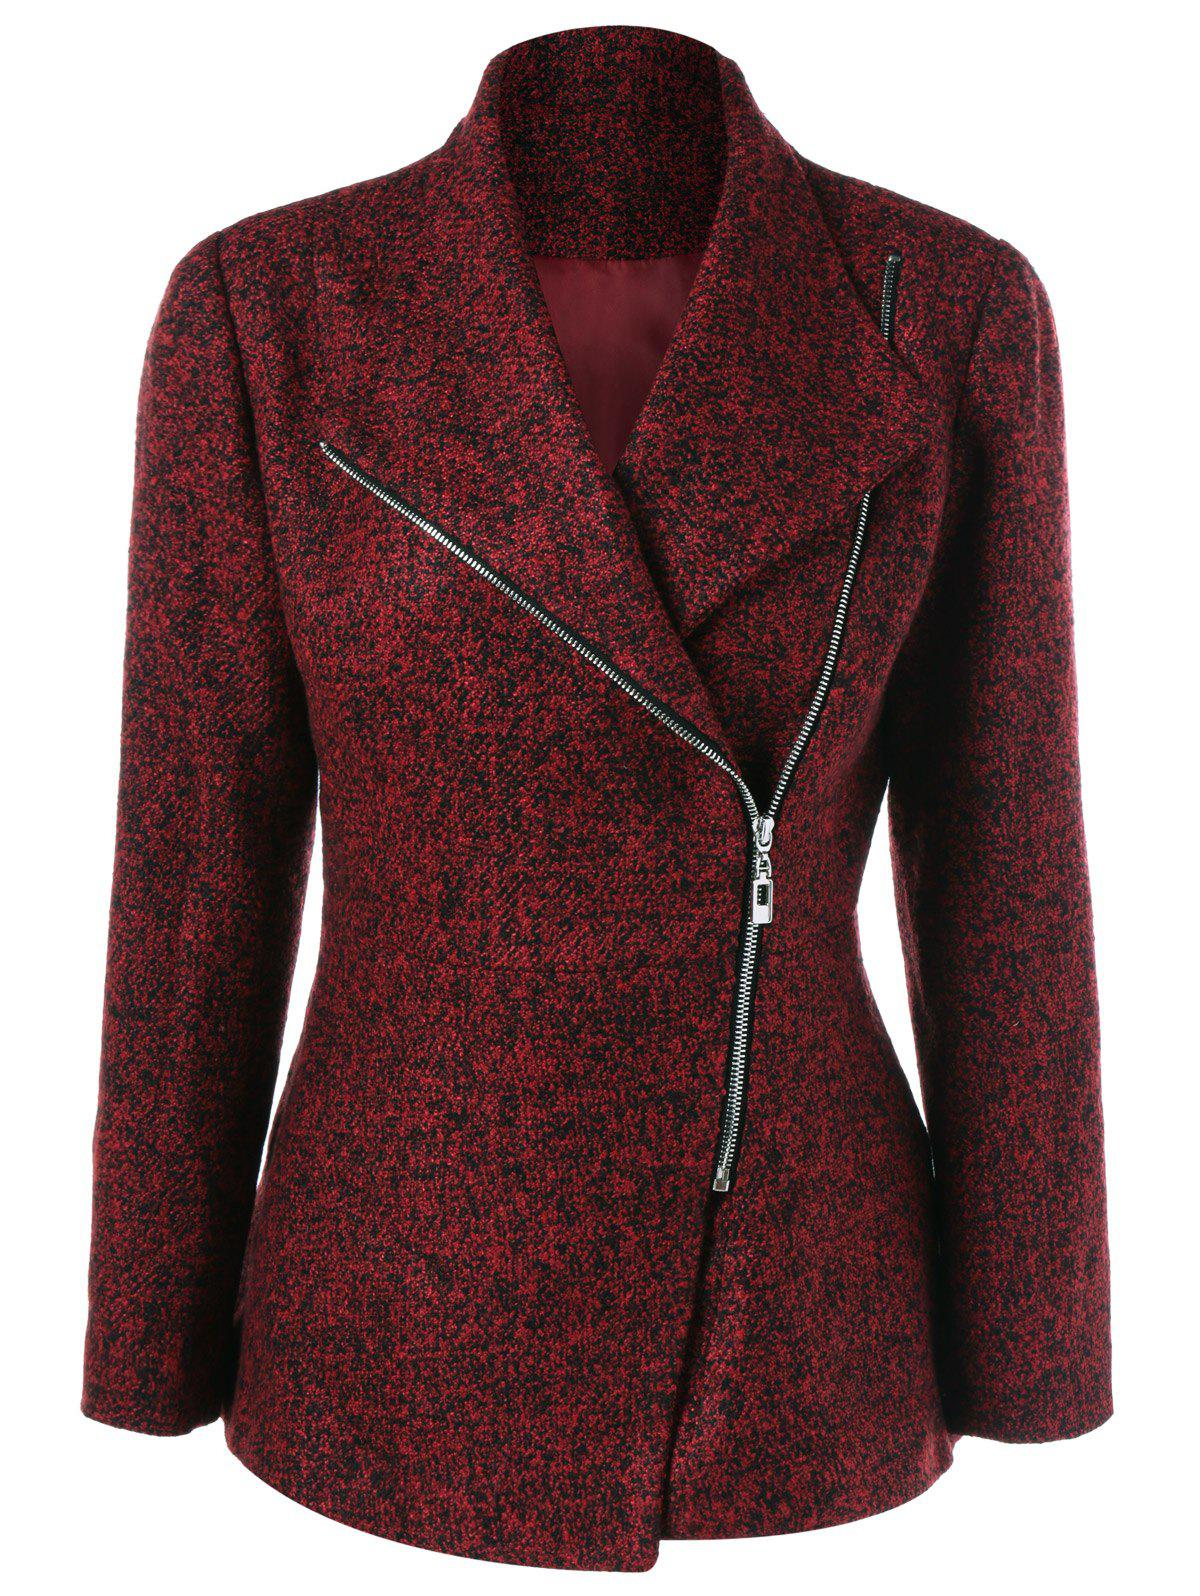 Inclined Zipper Marled JacketWOMEN<br><br>Size: XL; Color: DARK RED; Clothes Type: Jackets; Material: Polyester; Type: Slim; Shirt Length: Regular; Sleeve Length: Full; Collar: Turn-down Collar; Pattern Type: Others; Embellishment: Zippers; Style: Fashion; Season: Fall,Spring; Weight: 0.470kg; Package Contents: 1 x Jacket;